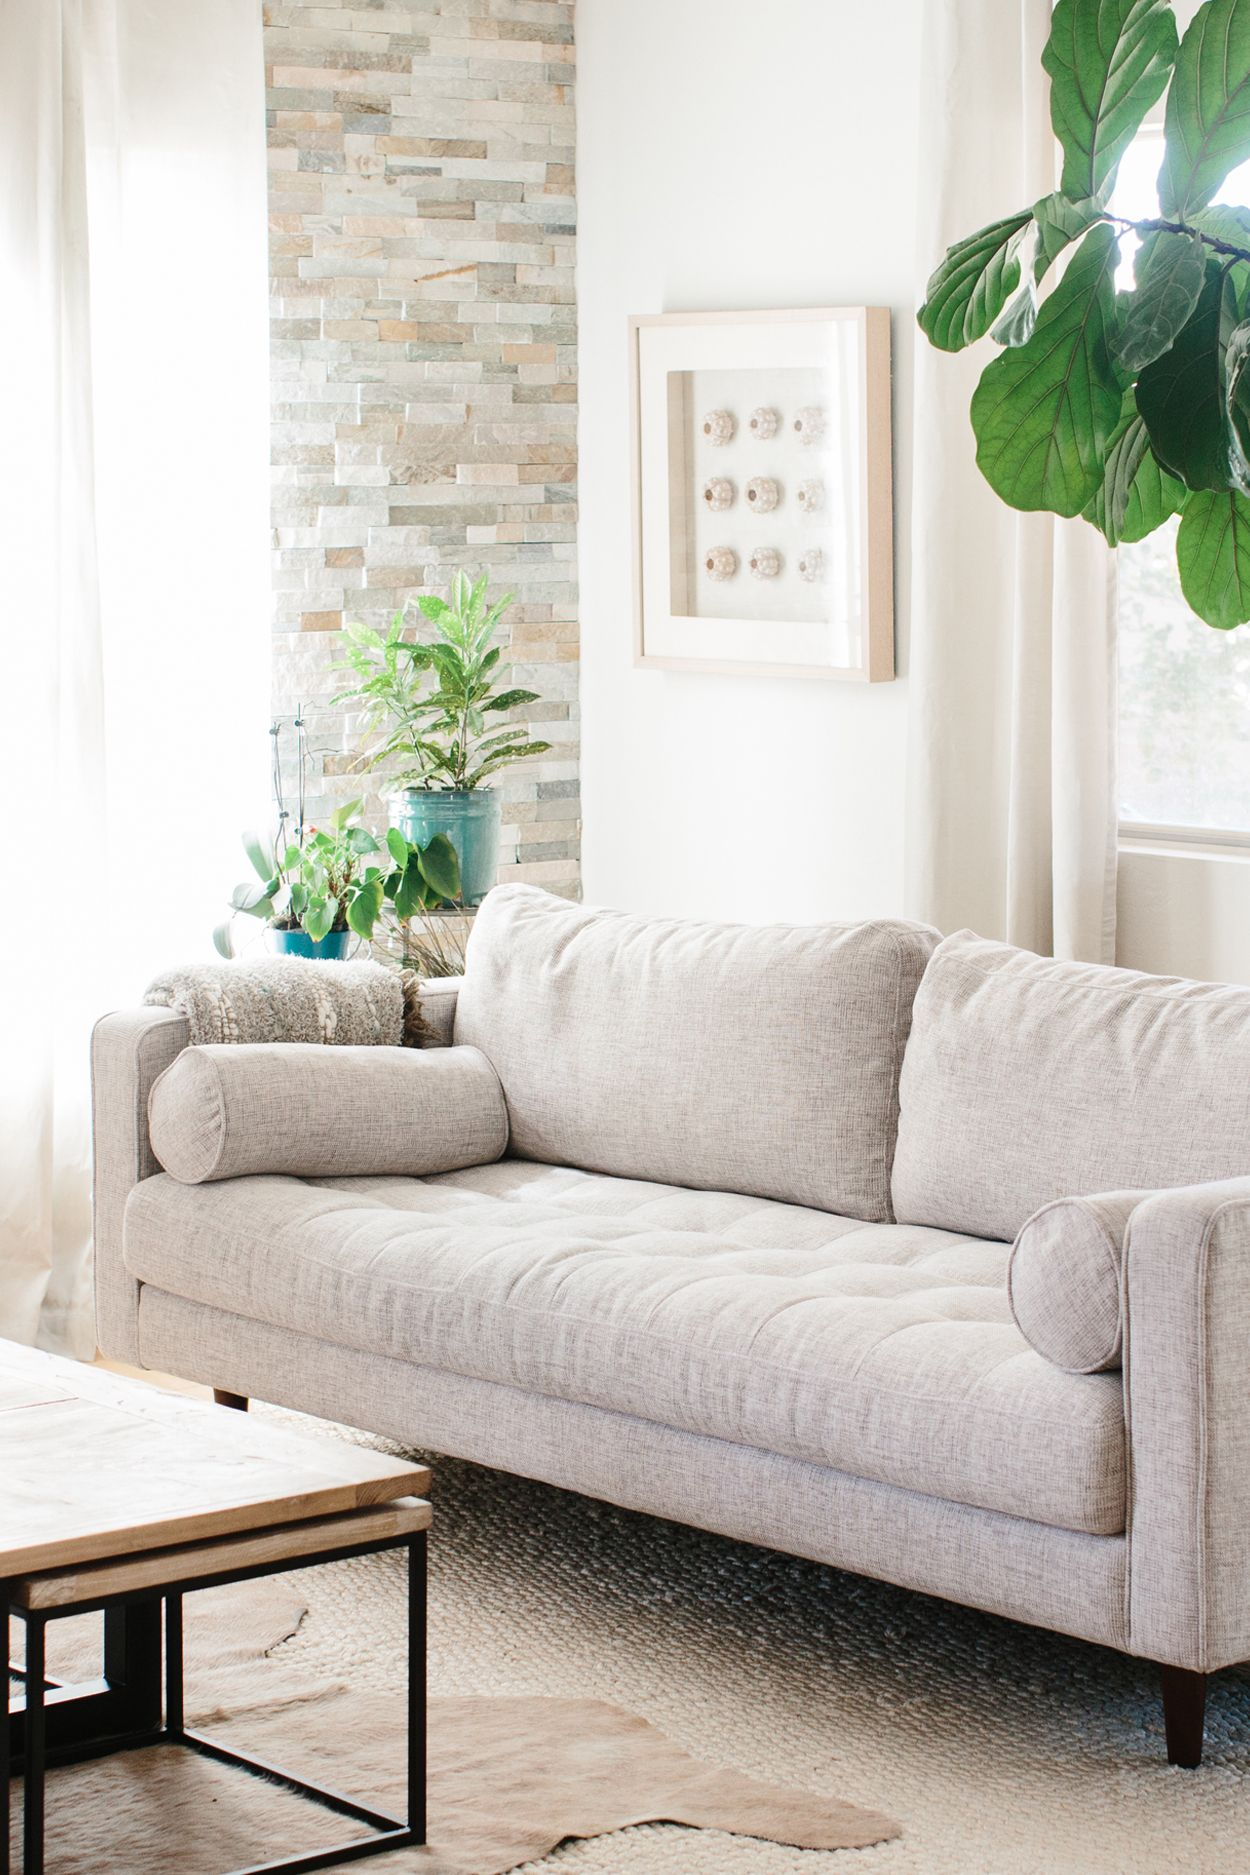 You get good design comfort quality and price all in one sofa plus its shipped to your door and you have